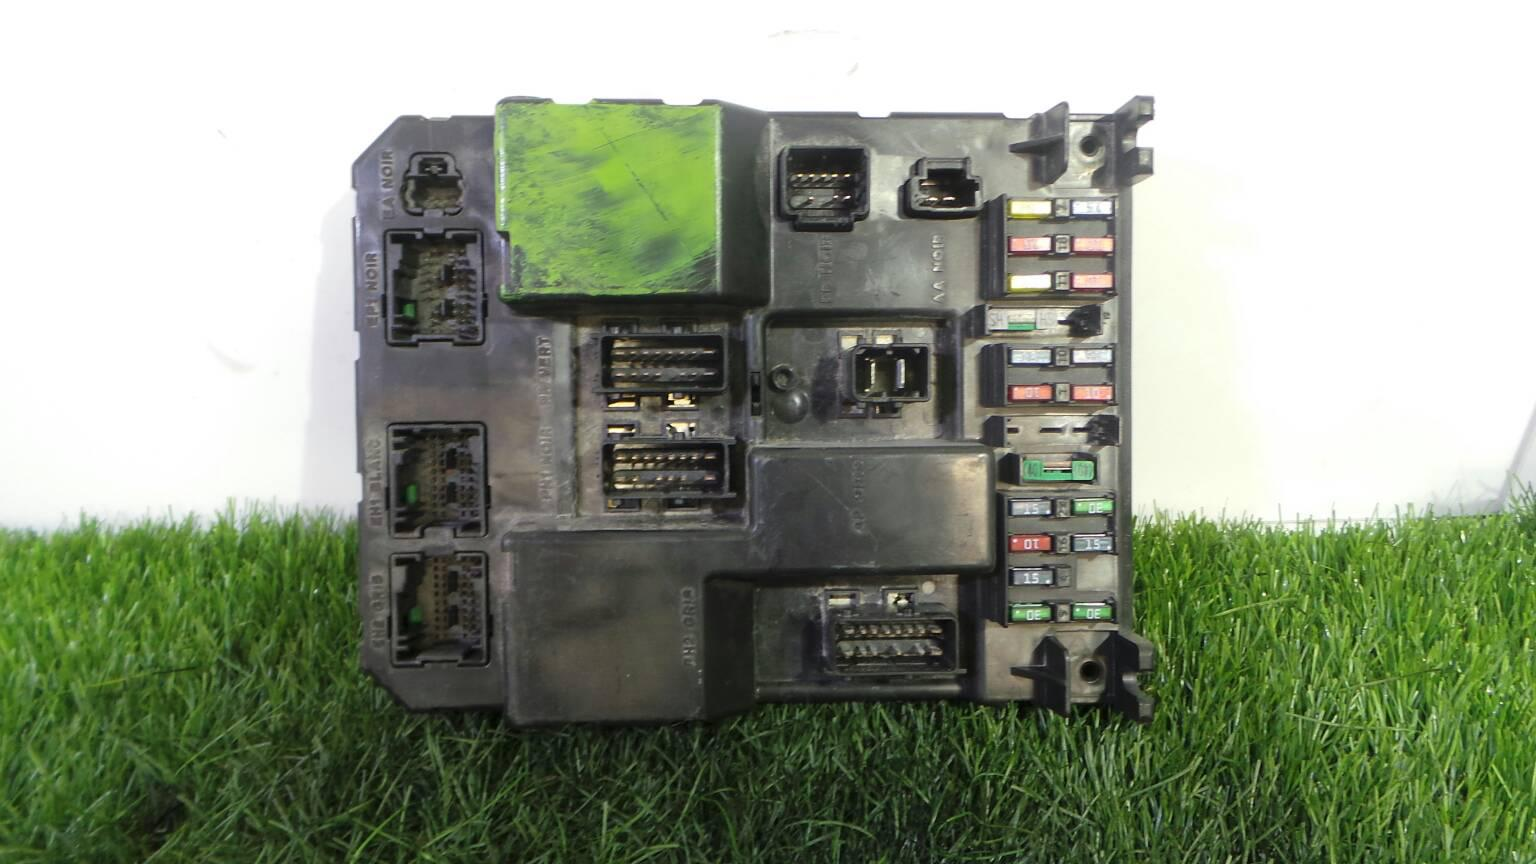 Peugeot 307 Fuse Box Indicators Archive Of Automotive Wiring Diagram Where Is 3a C 2 0 Hdi 90 1407320 Rh B Parts Com